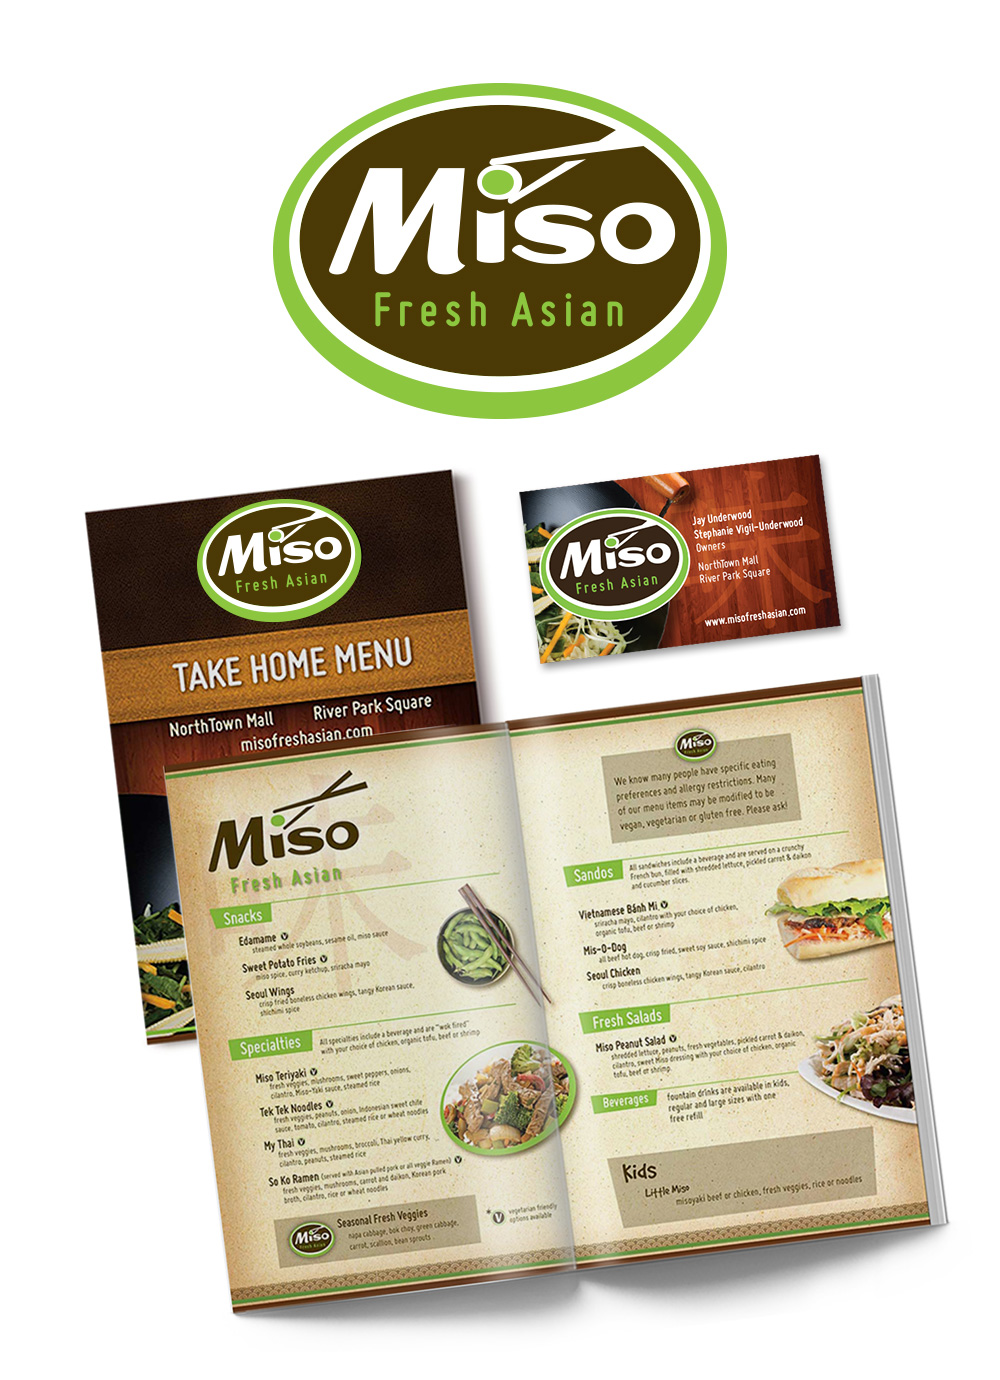 Miso Fresh Asian branding